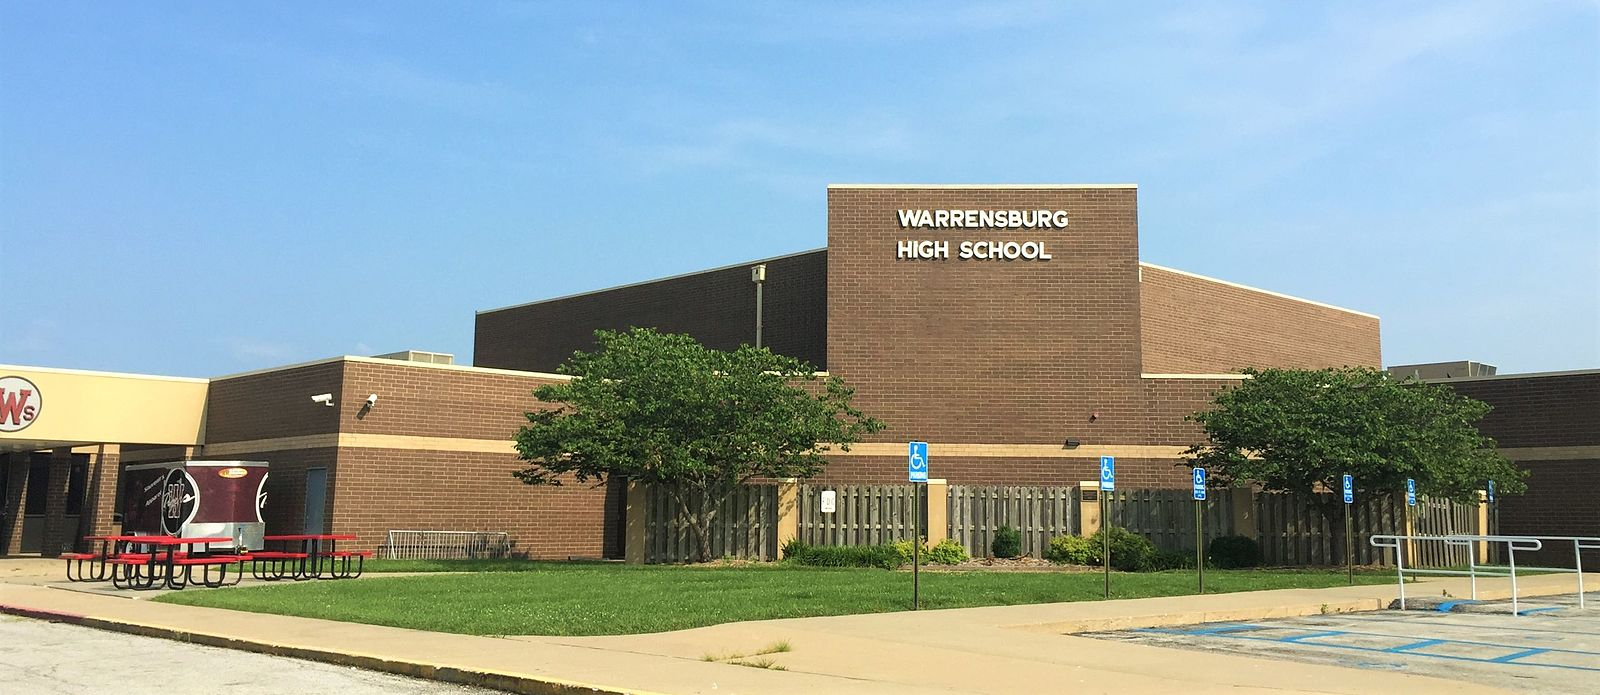 Warrensburg_High_School_1